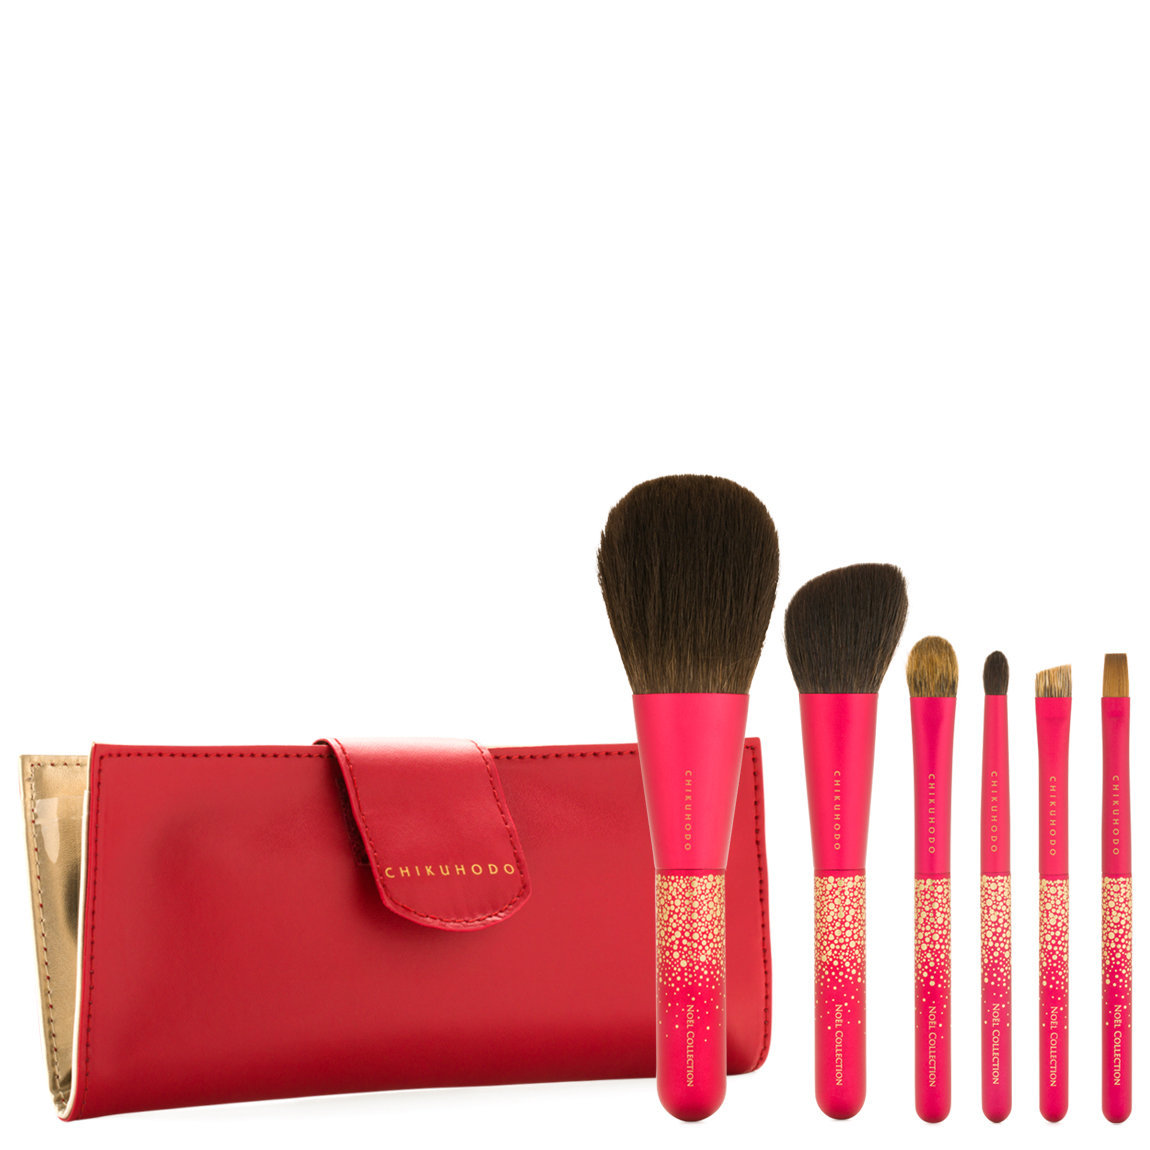 CHIKUHODO Noel Collection Rouge Brush Set product smear.